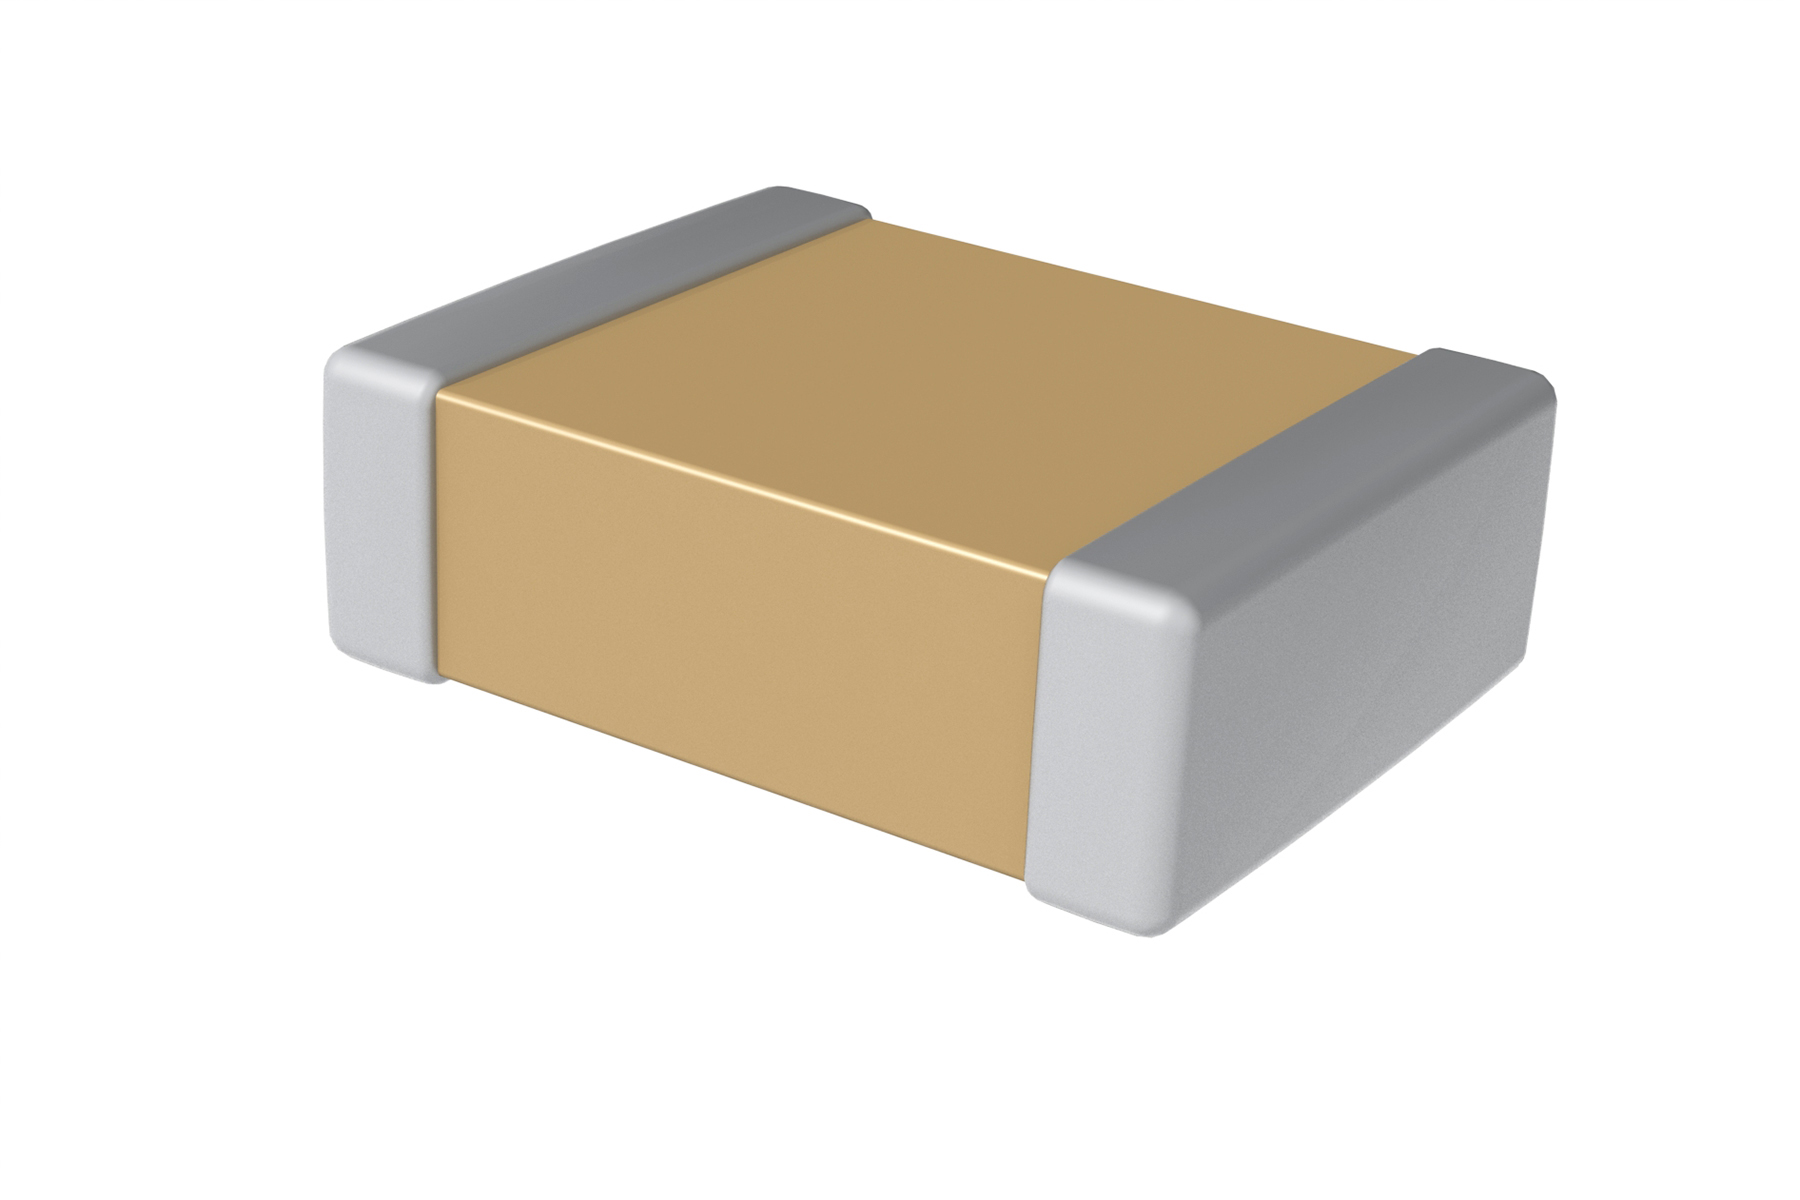 KEMET Expands ESD Rated Ceramic Capacitor Product Portfolio